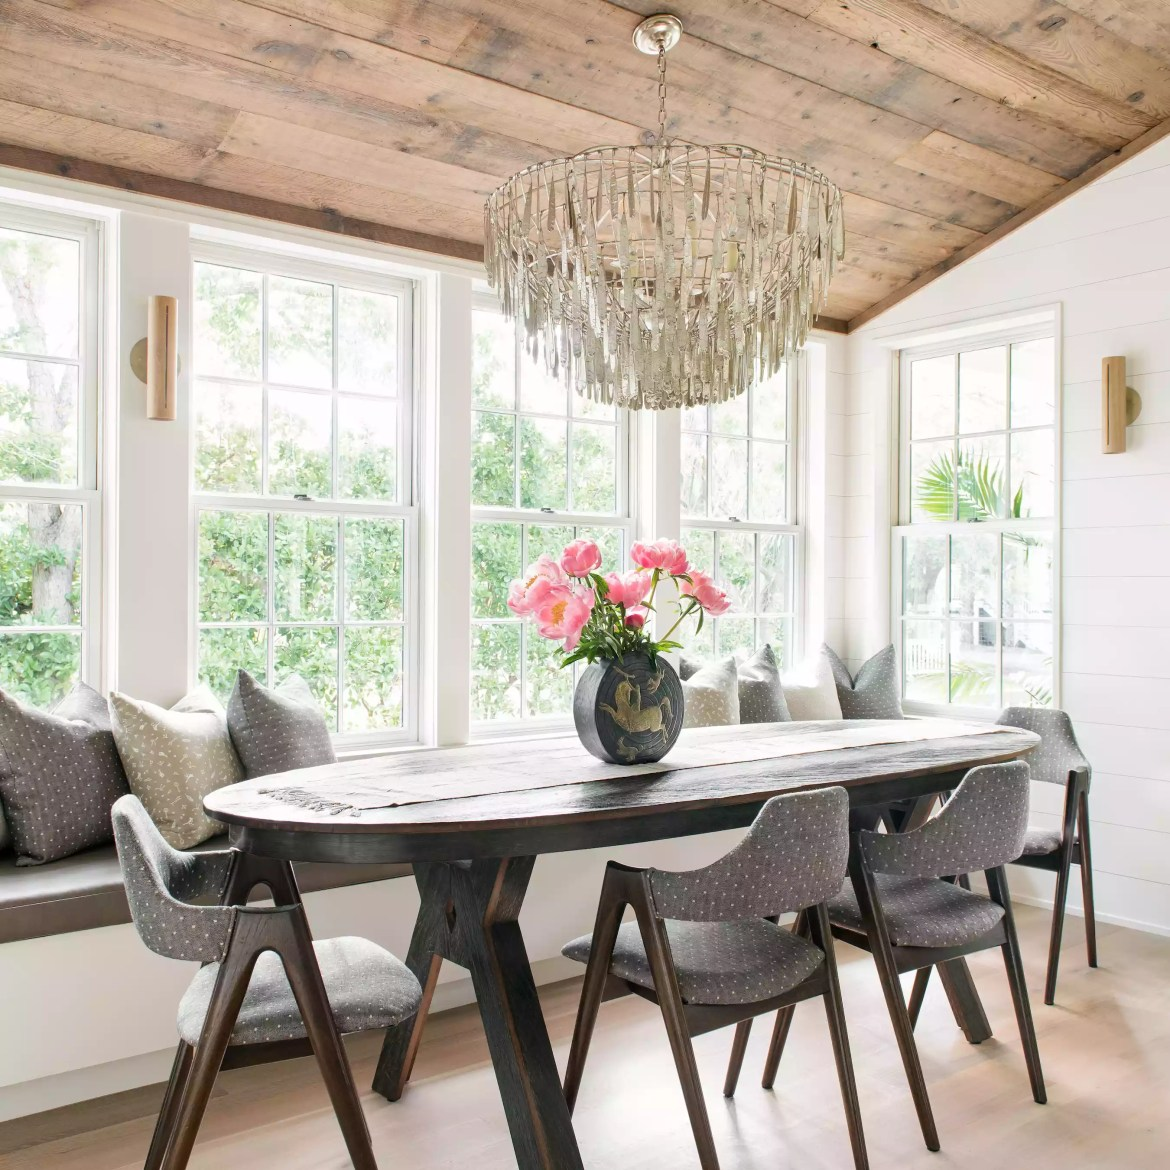 Dining space with crystal chandelier.